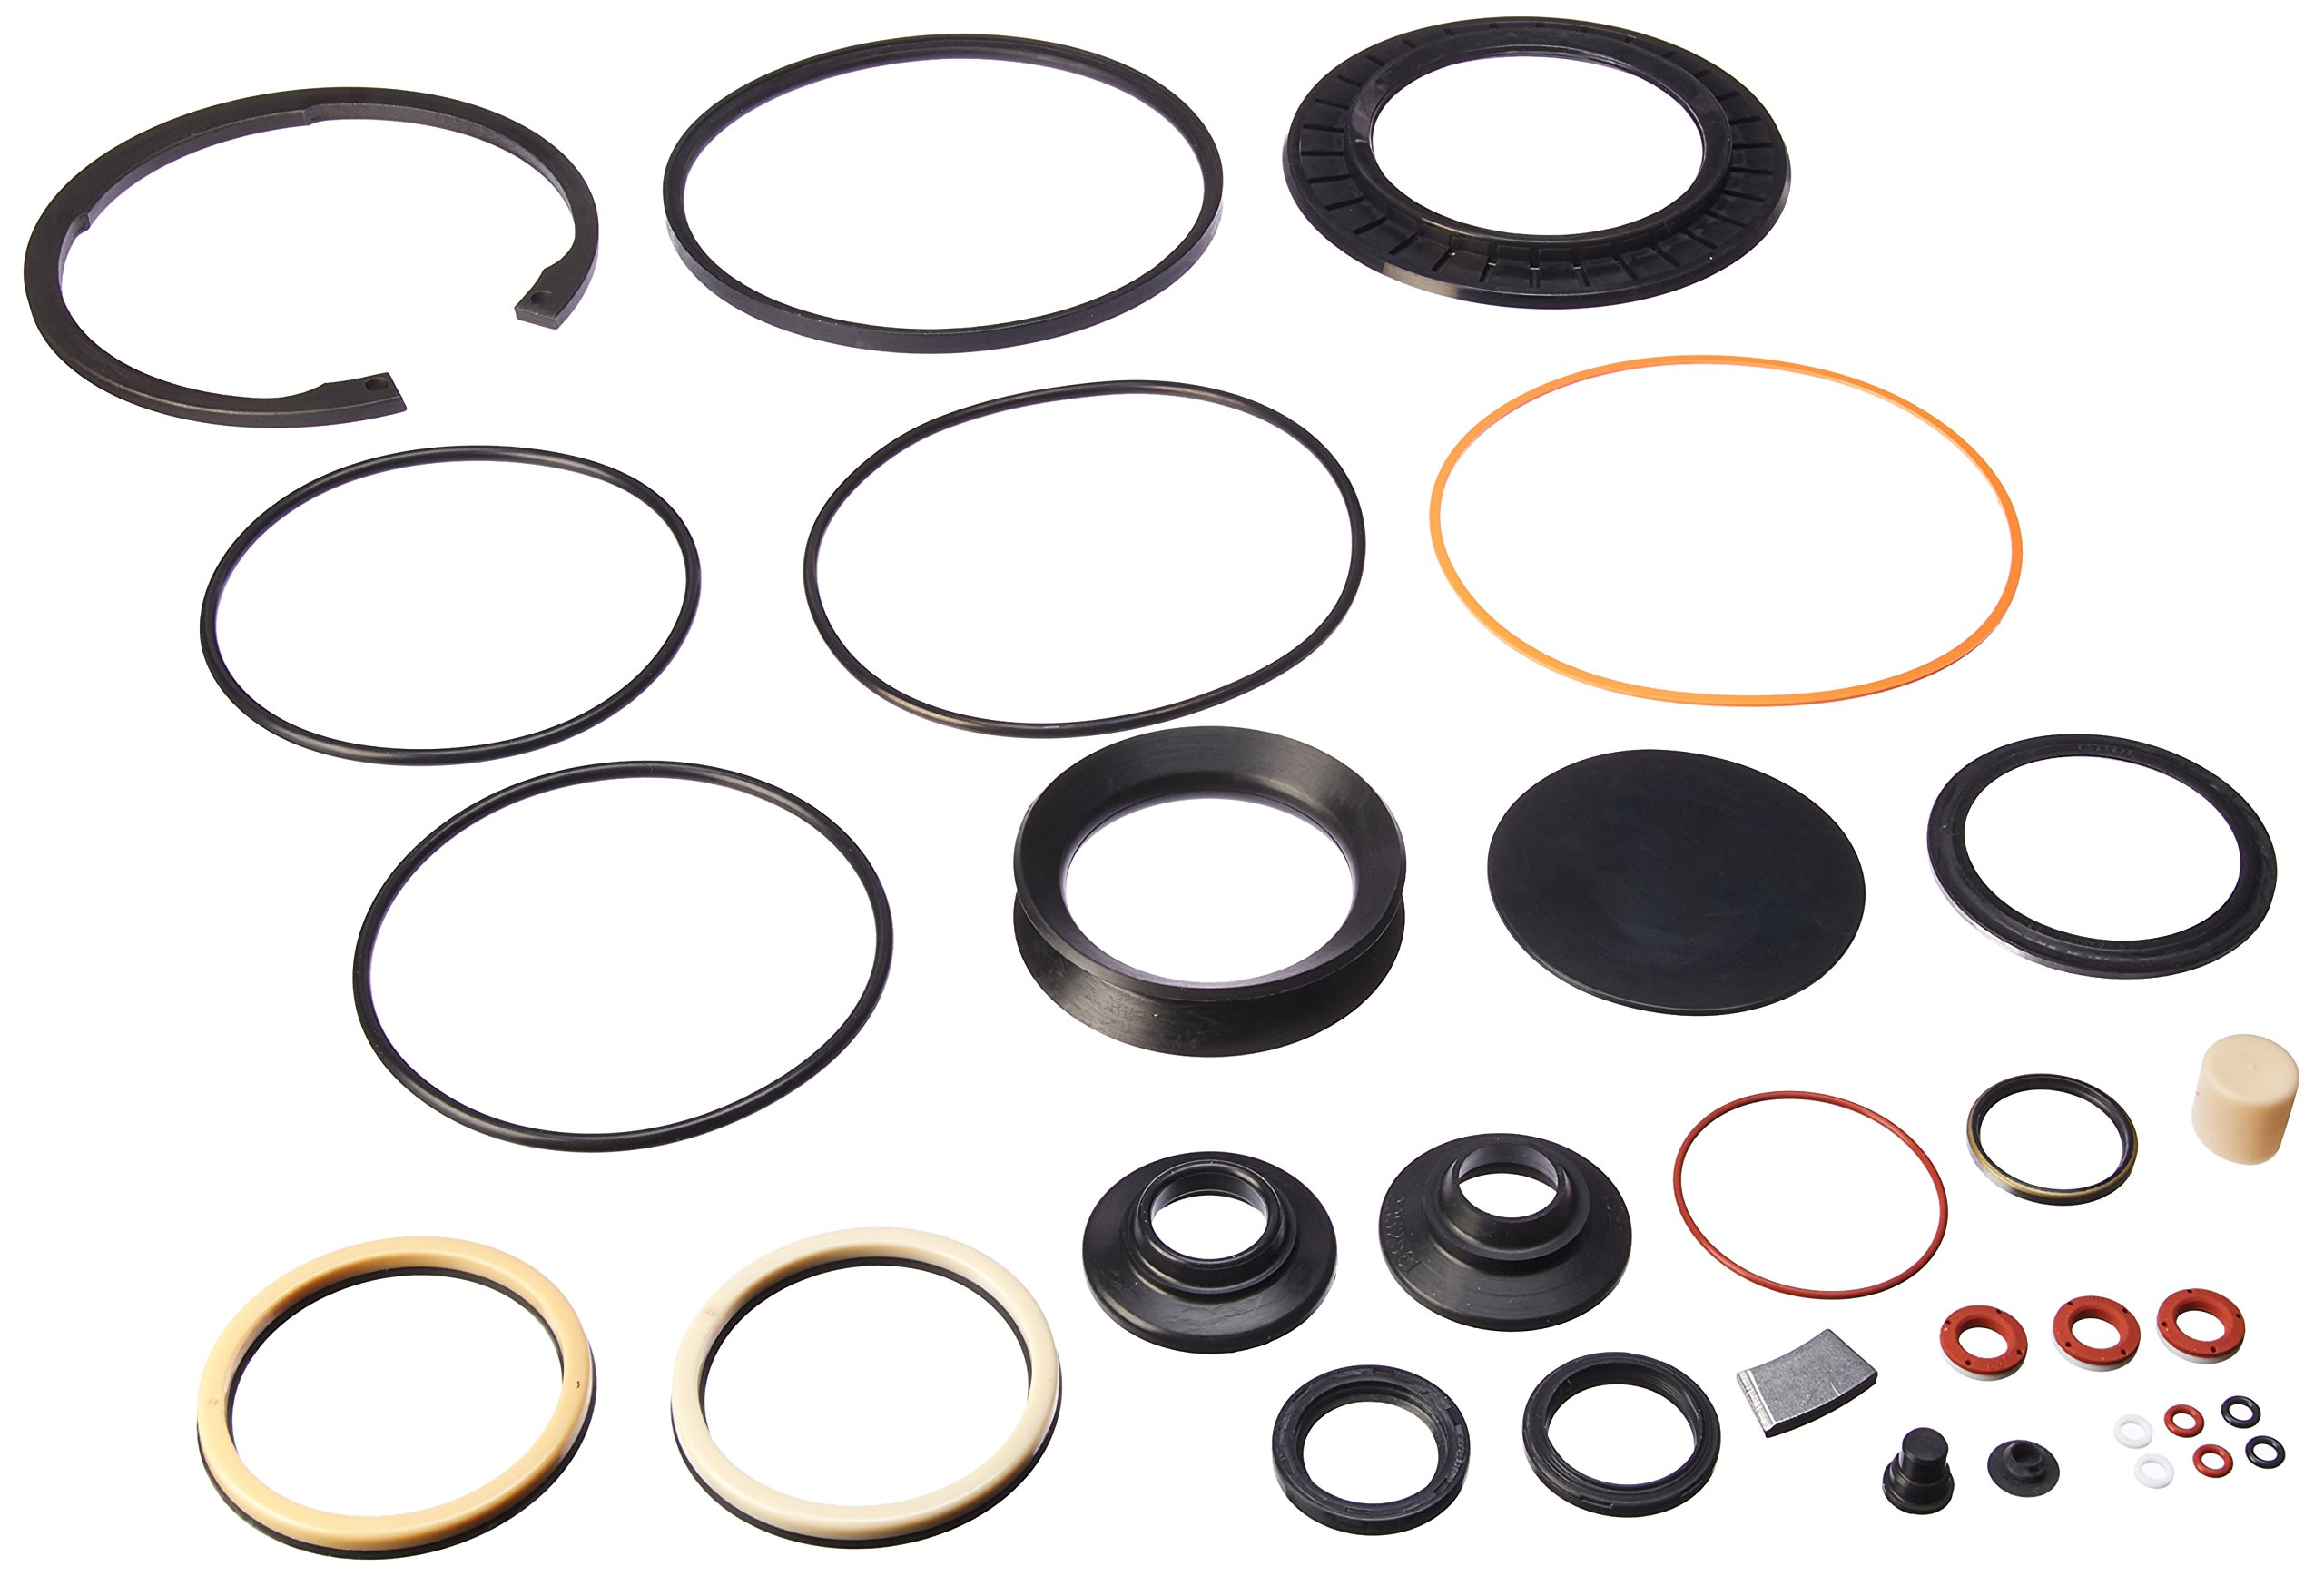 R. H. Sheppard 5545491 Combined Kit with Snap Ring and L-Seal (5544861, 5545481, 5544921) by R. H. Sheppard